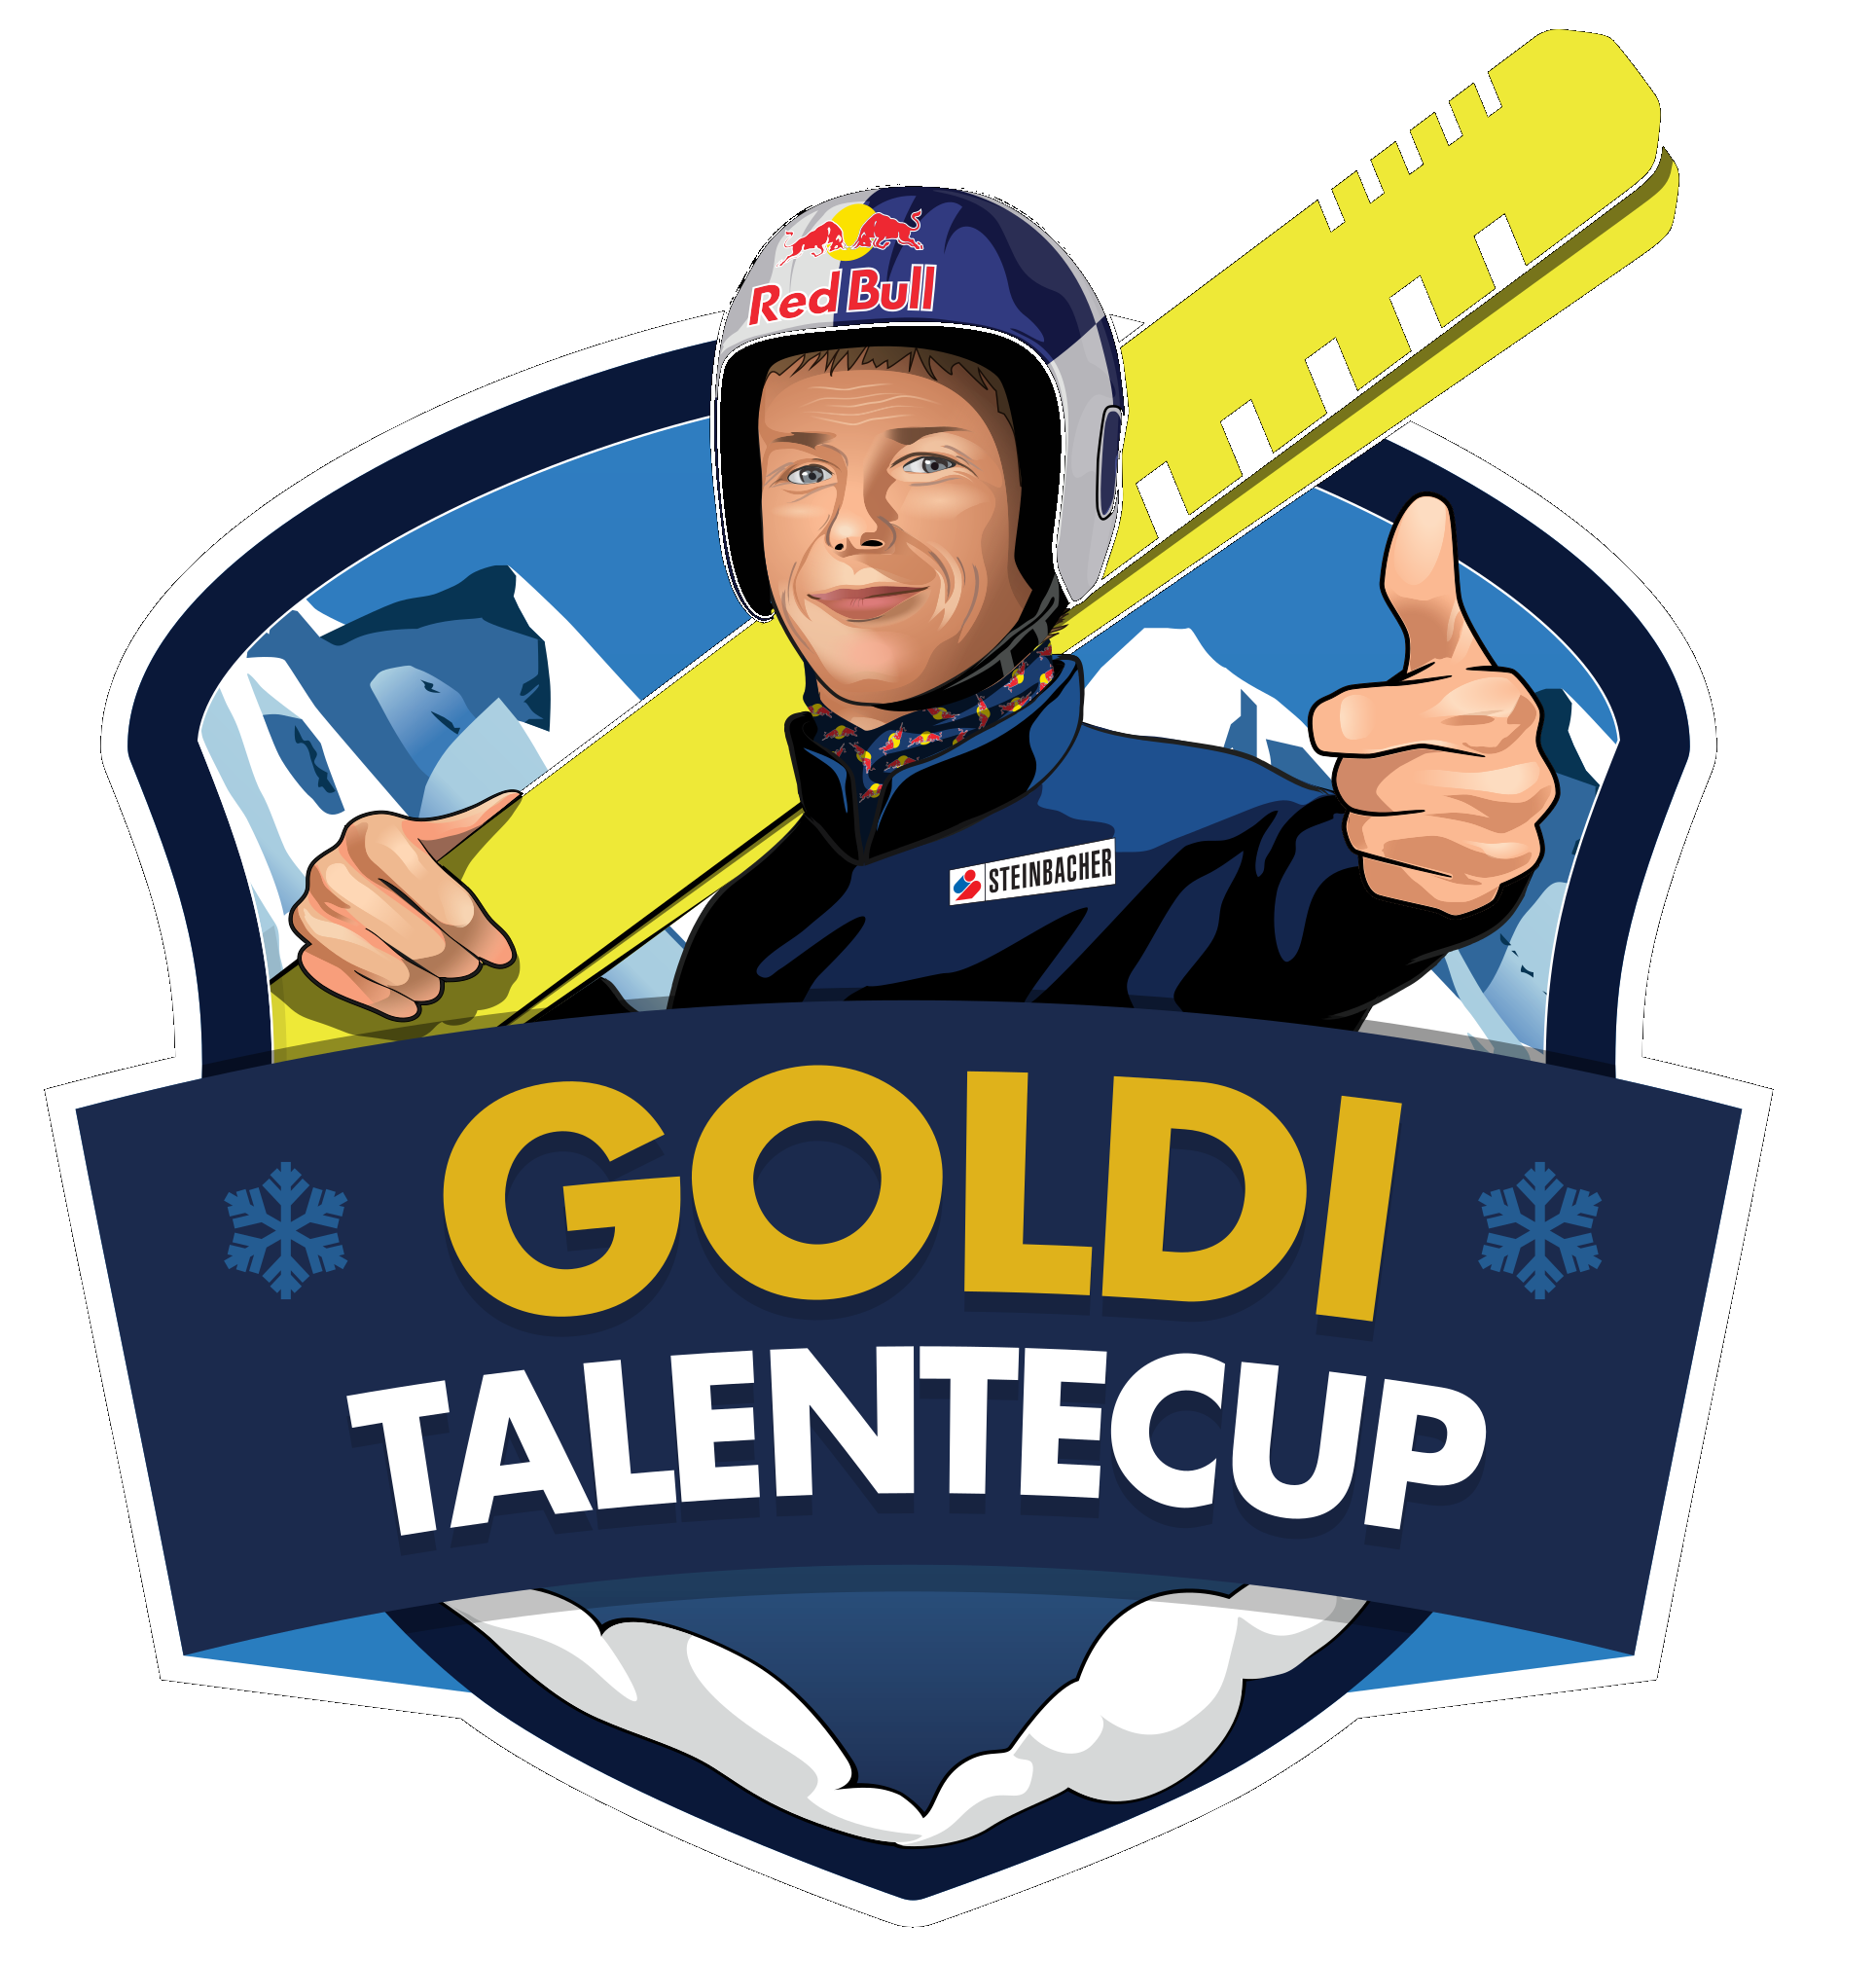 Andreas Goldberger Talente-Cup